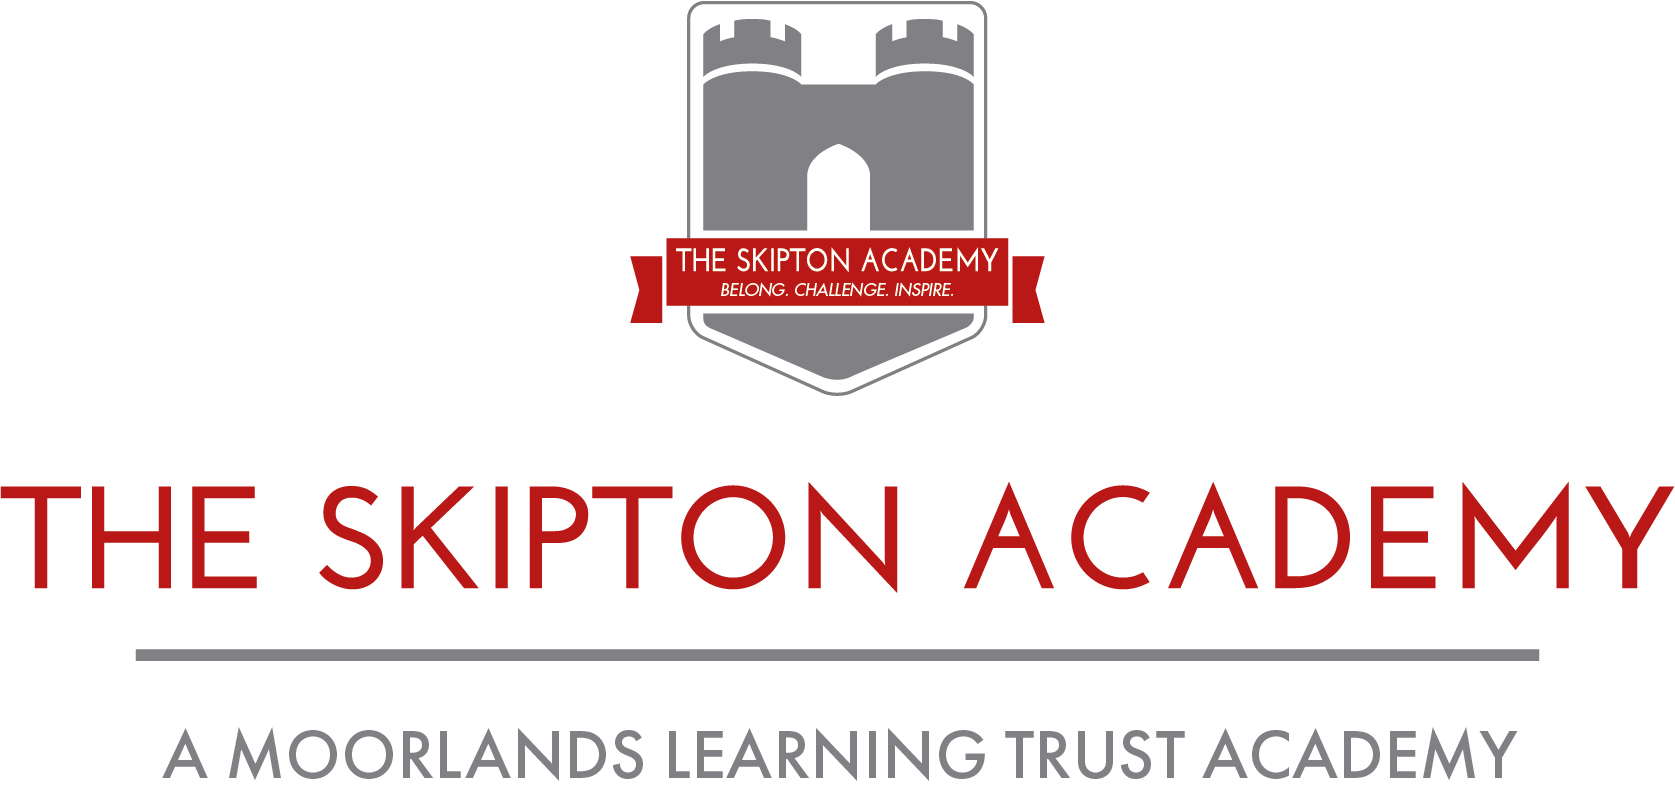 The Skipton Academy